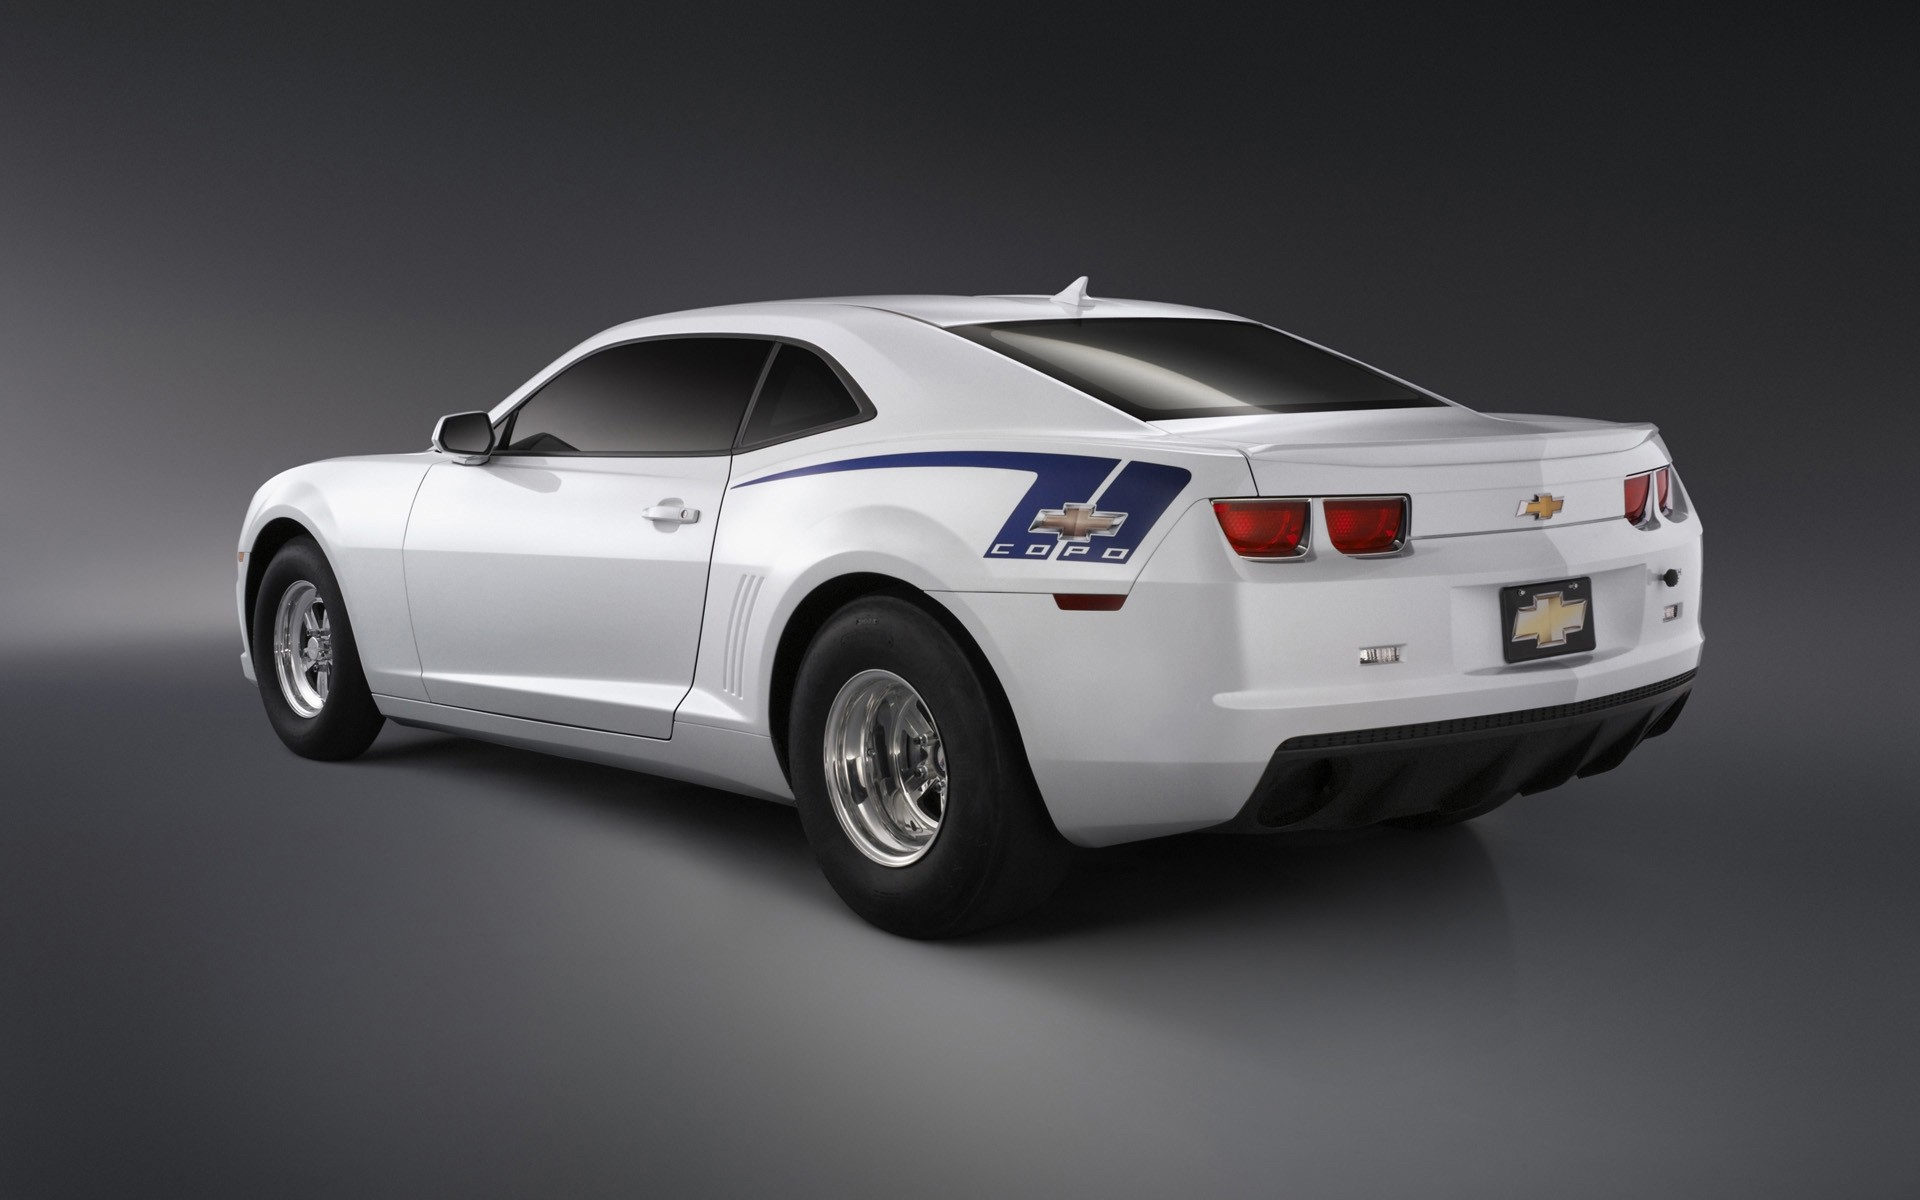 chevrolet copo camaro concept rear. android wallpapers for free.